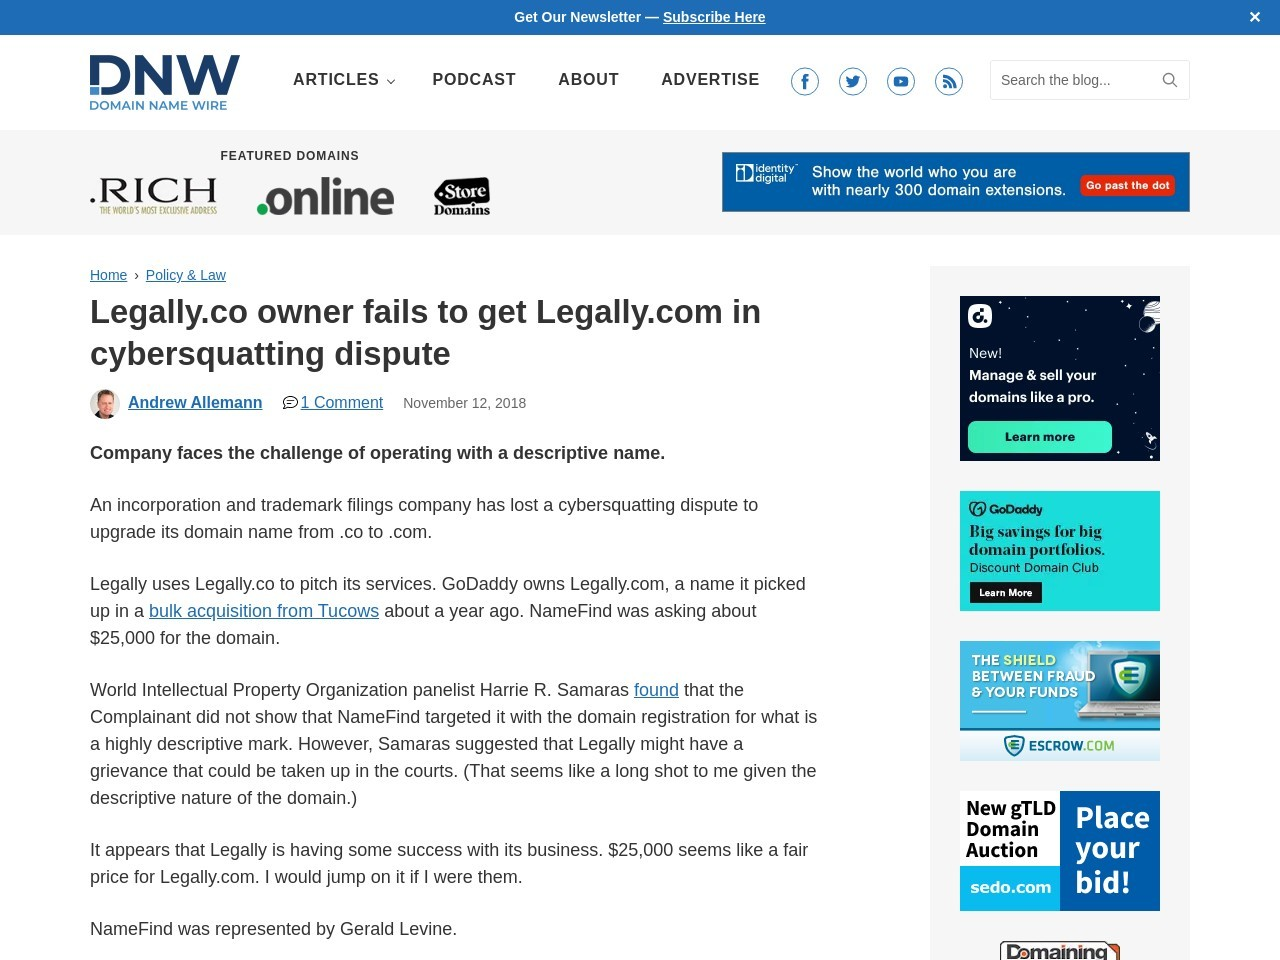 Legally.co owner fails to get Legally.com in cybersquatting dispute